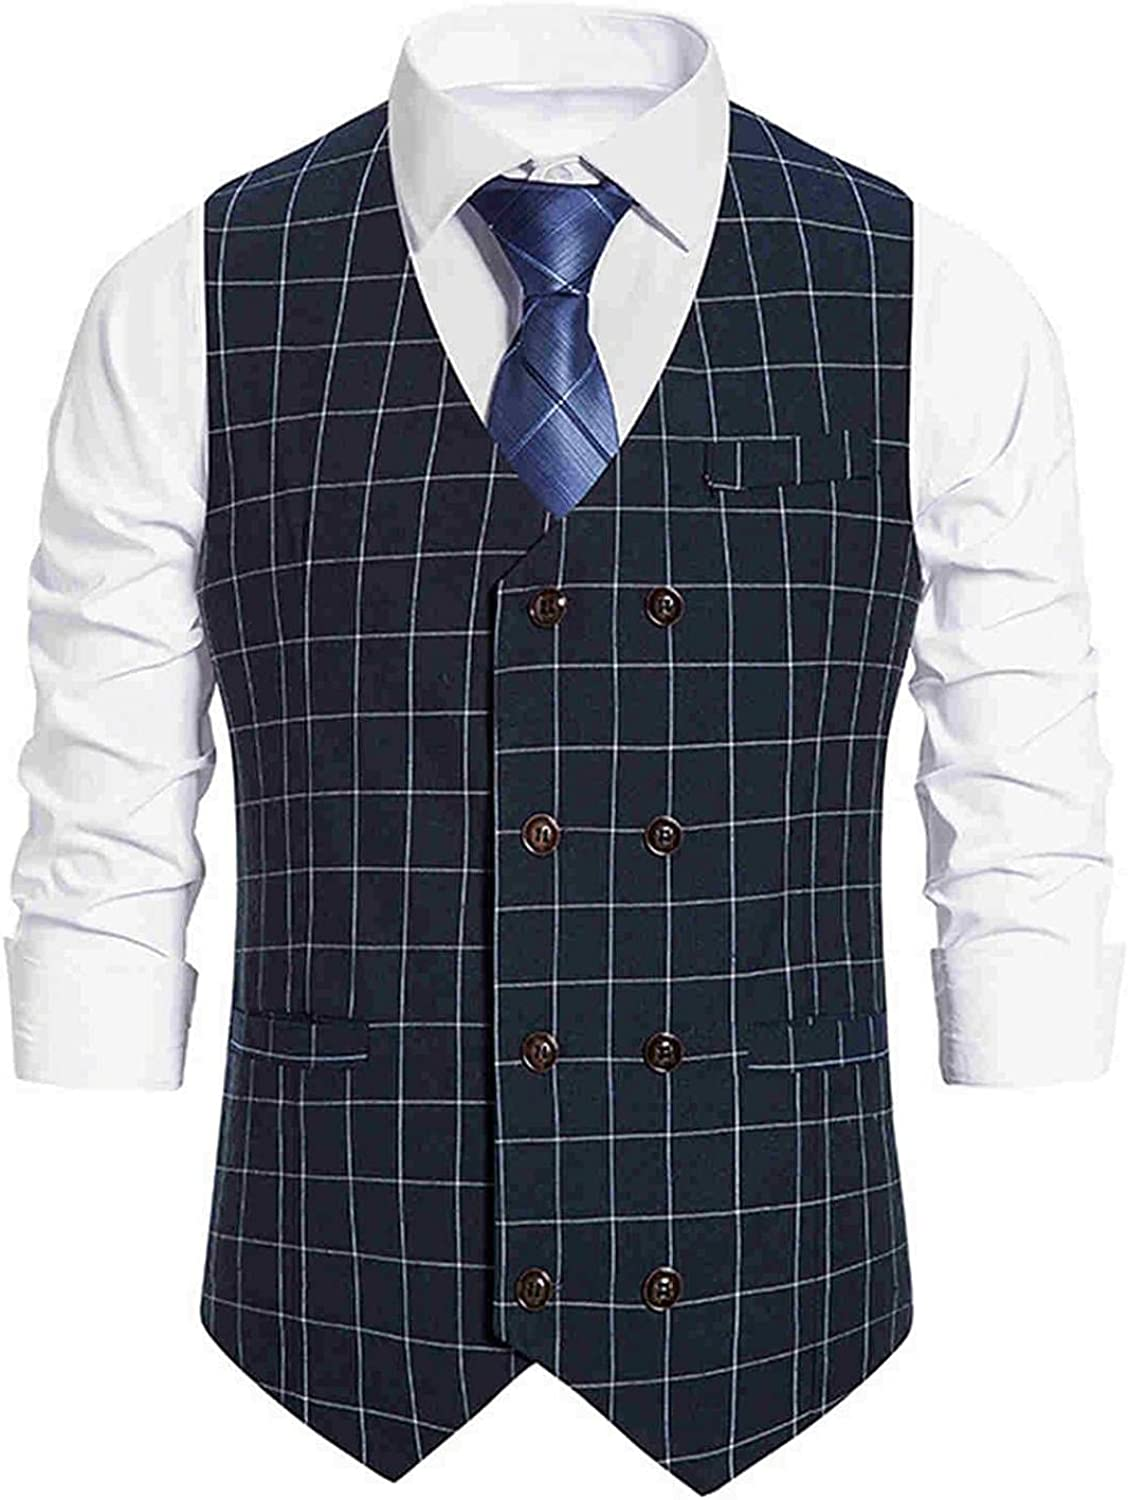 XUNFUN Suit Vest for Men Big and Tall Slim Fit V-Neck Double Breasted Plaid Casual Business Dress Waistcoat Wedding Party